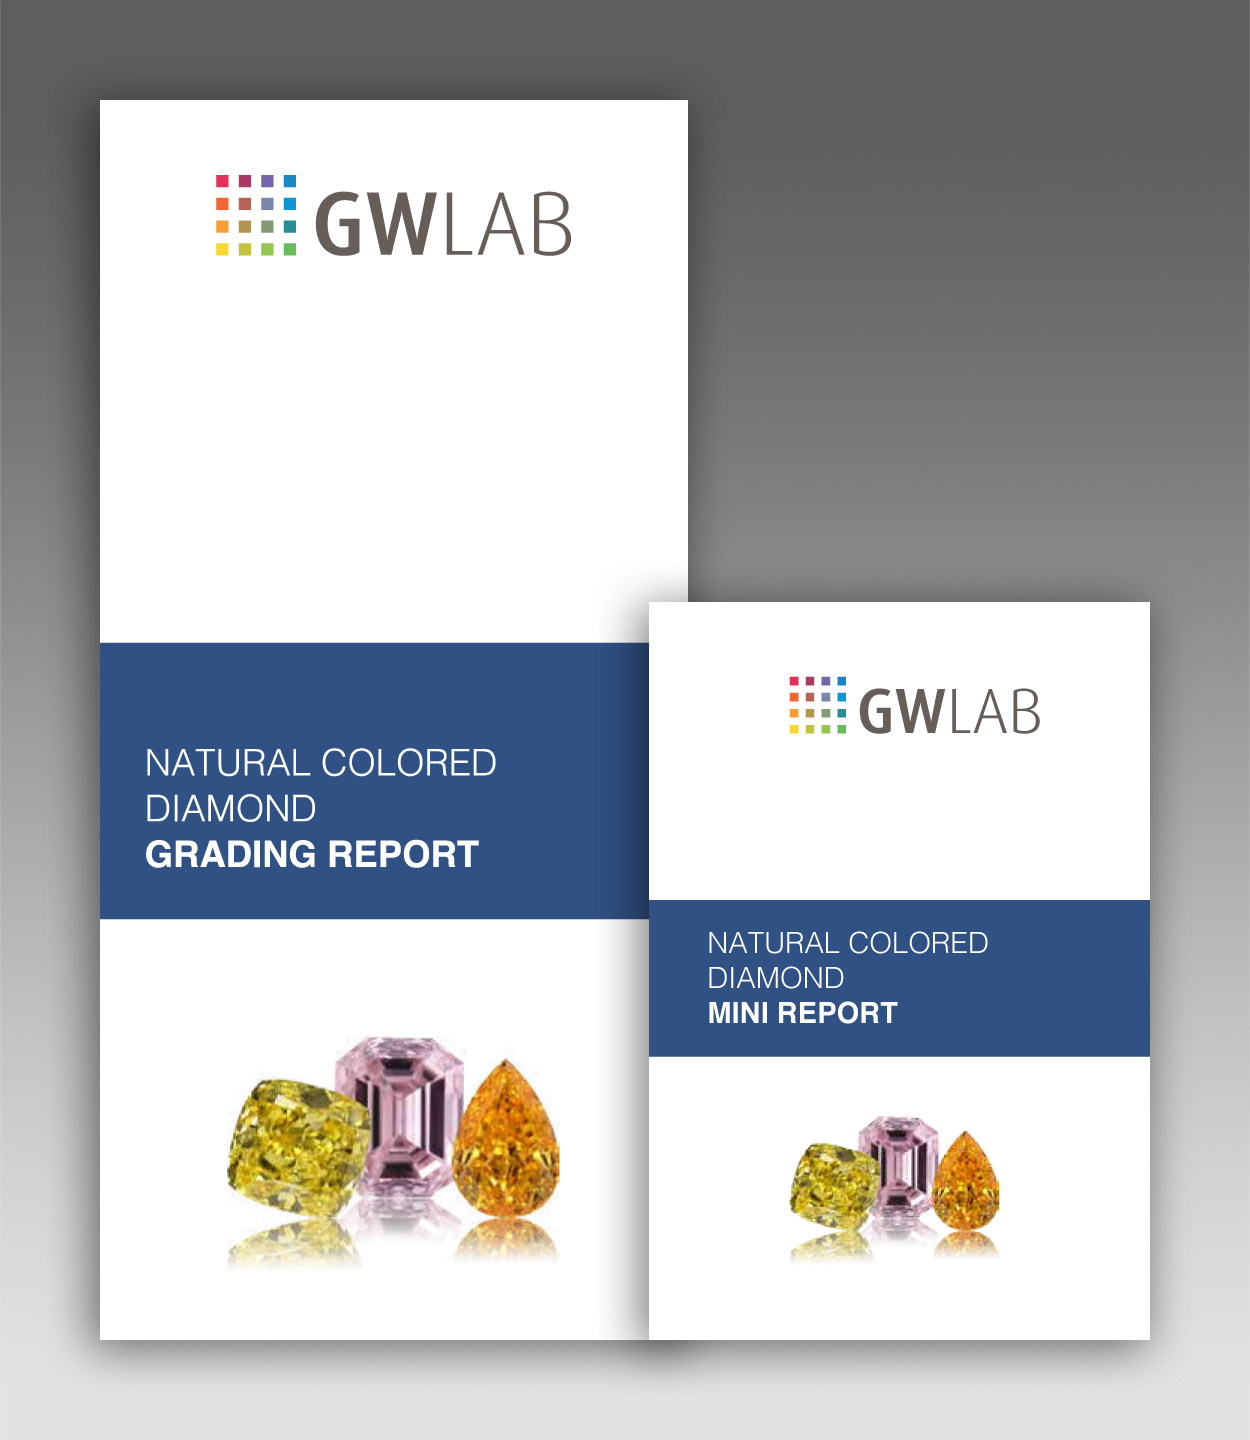 GWLAB Colored Diamond Grading Report - Outer Cover